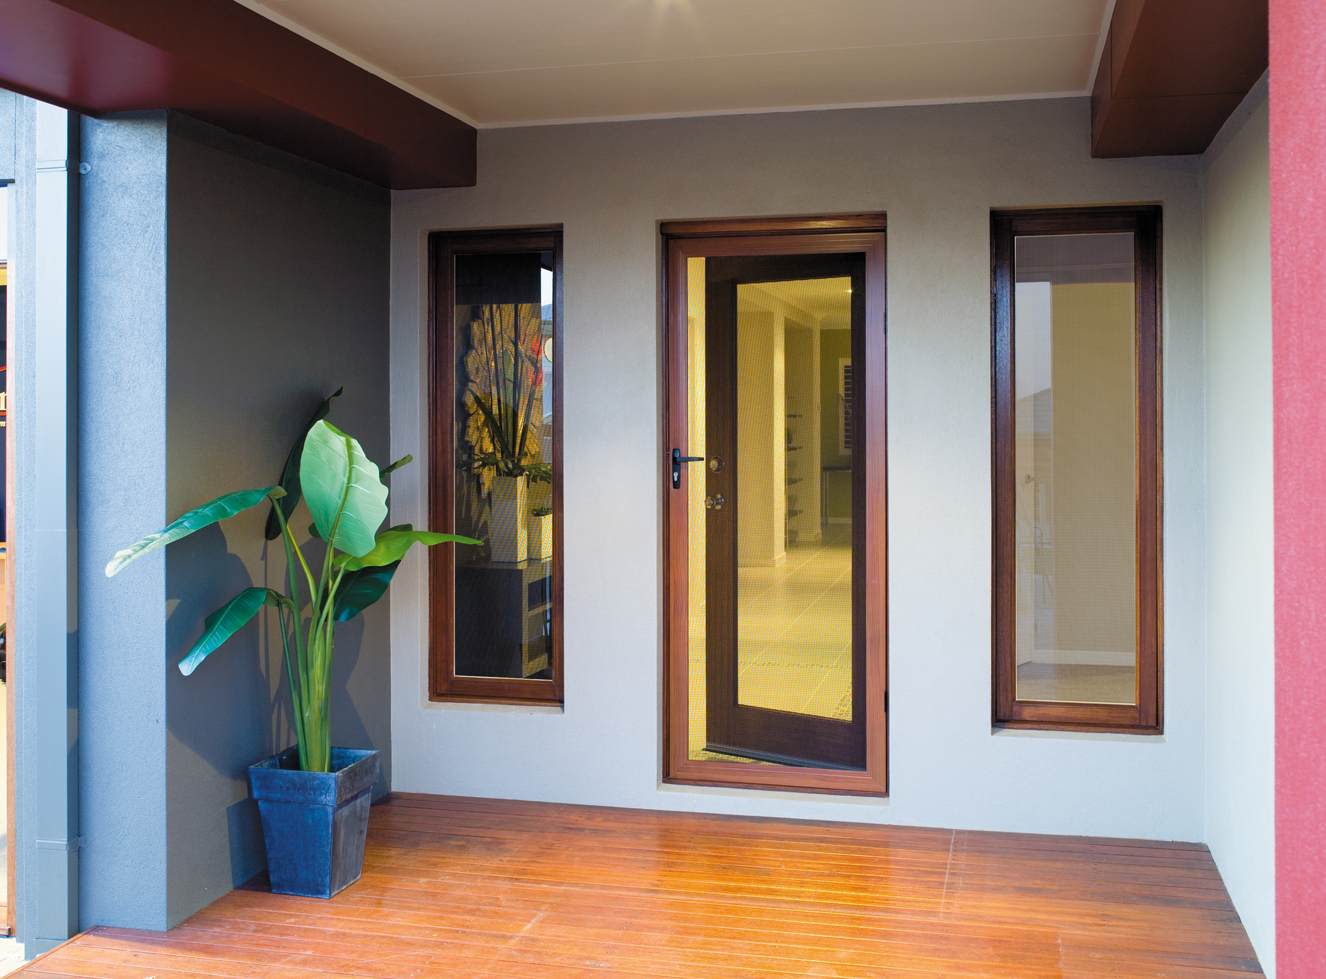 insect screens screens r us auckland screens r us. Black Bedroom Furniture Sets. Home Design Ideas